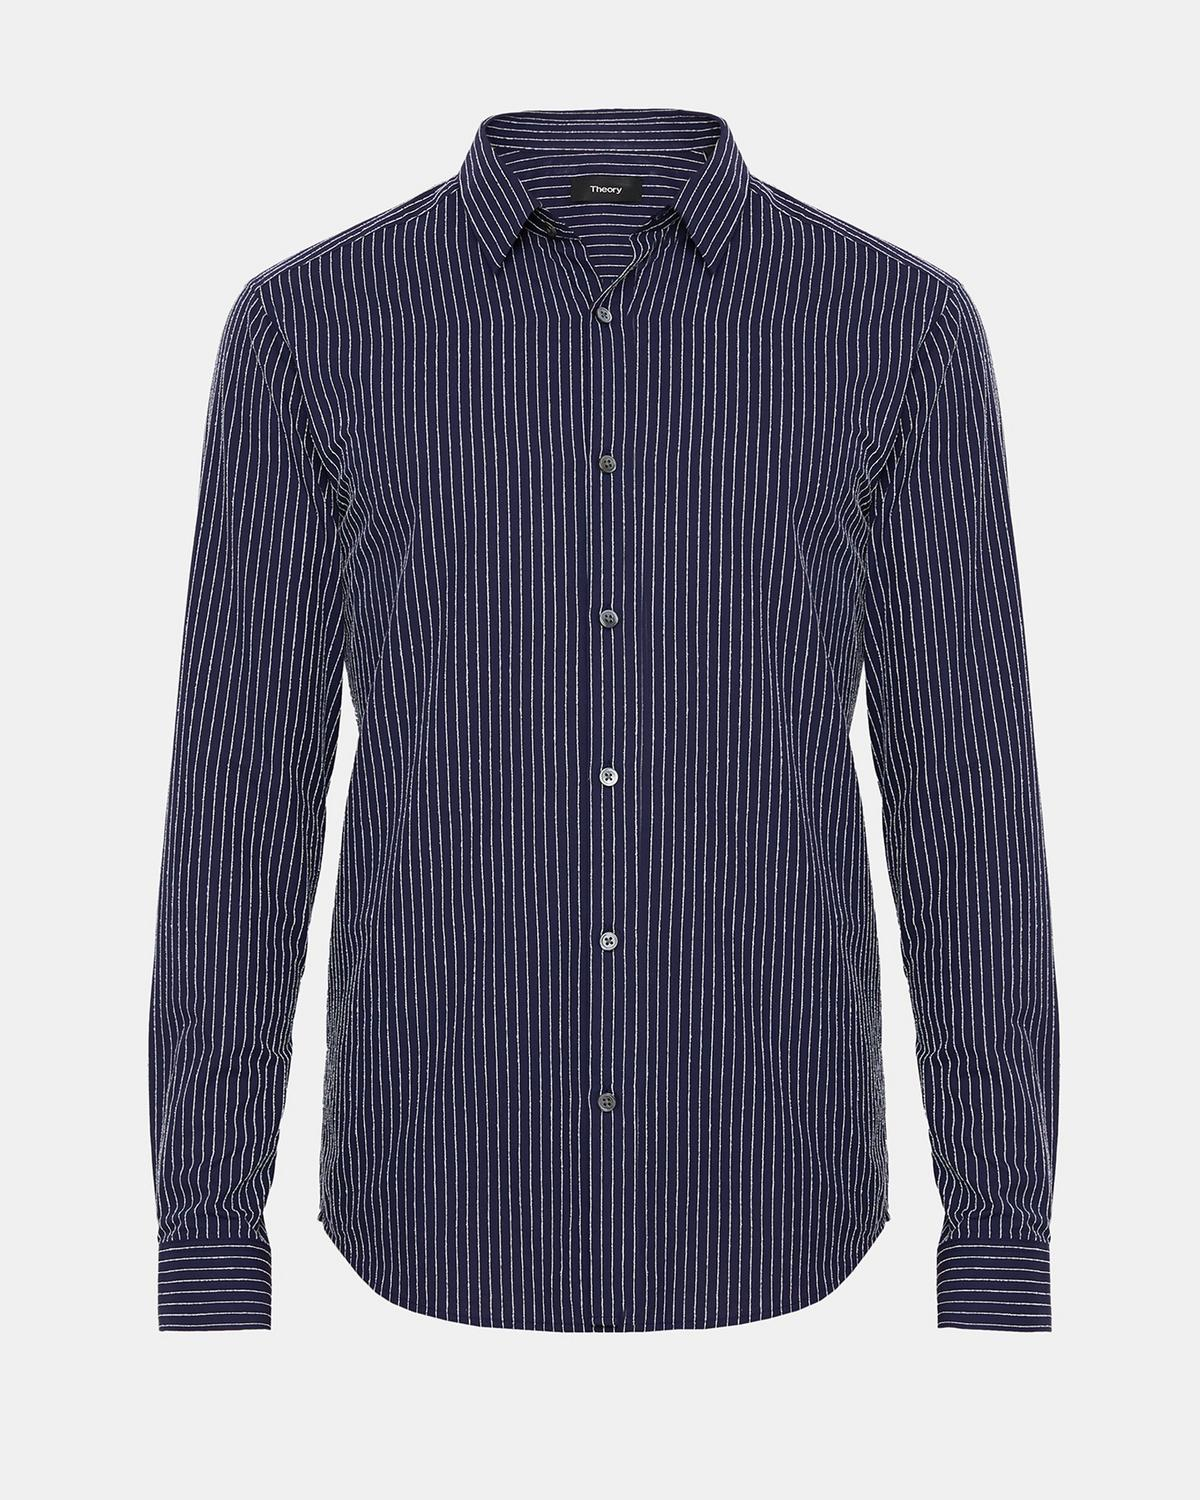 Preferred Chenille Pinstripe Standard-Fit Shirt | Theory XL38